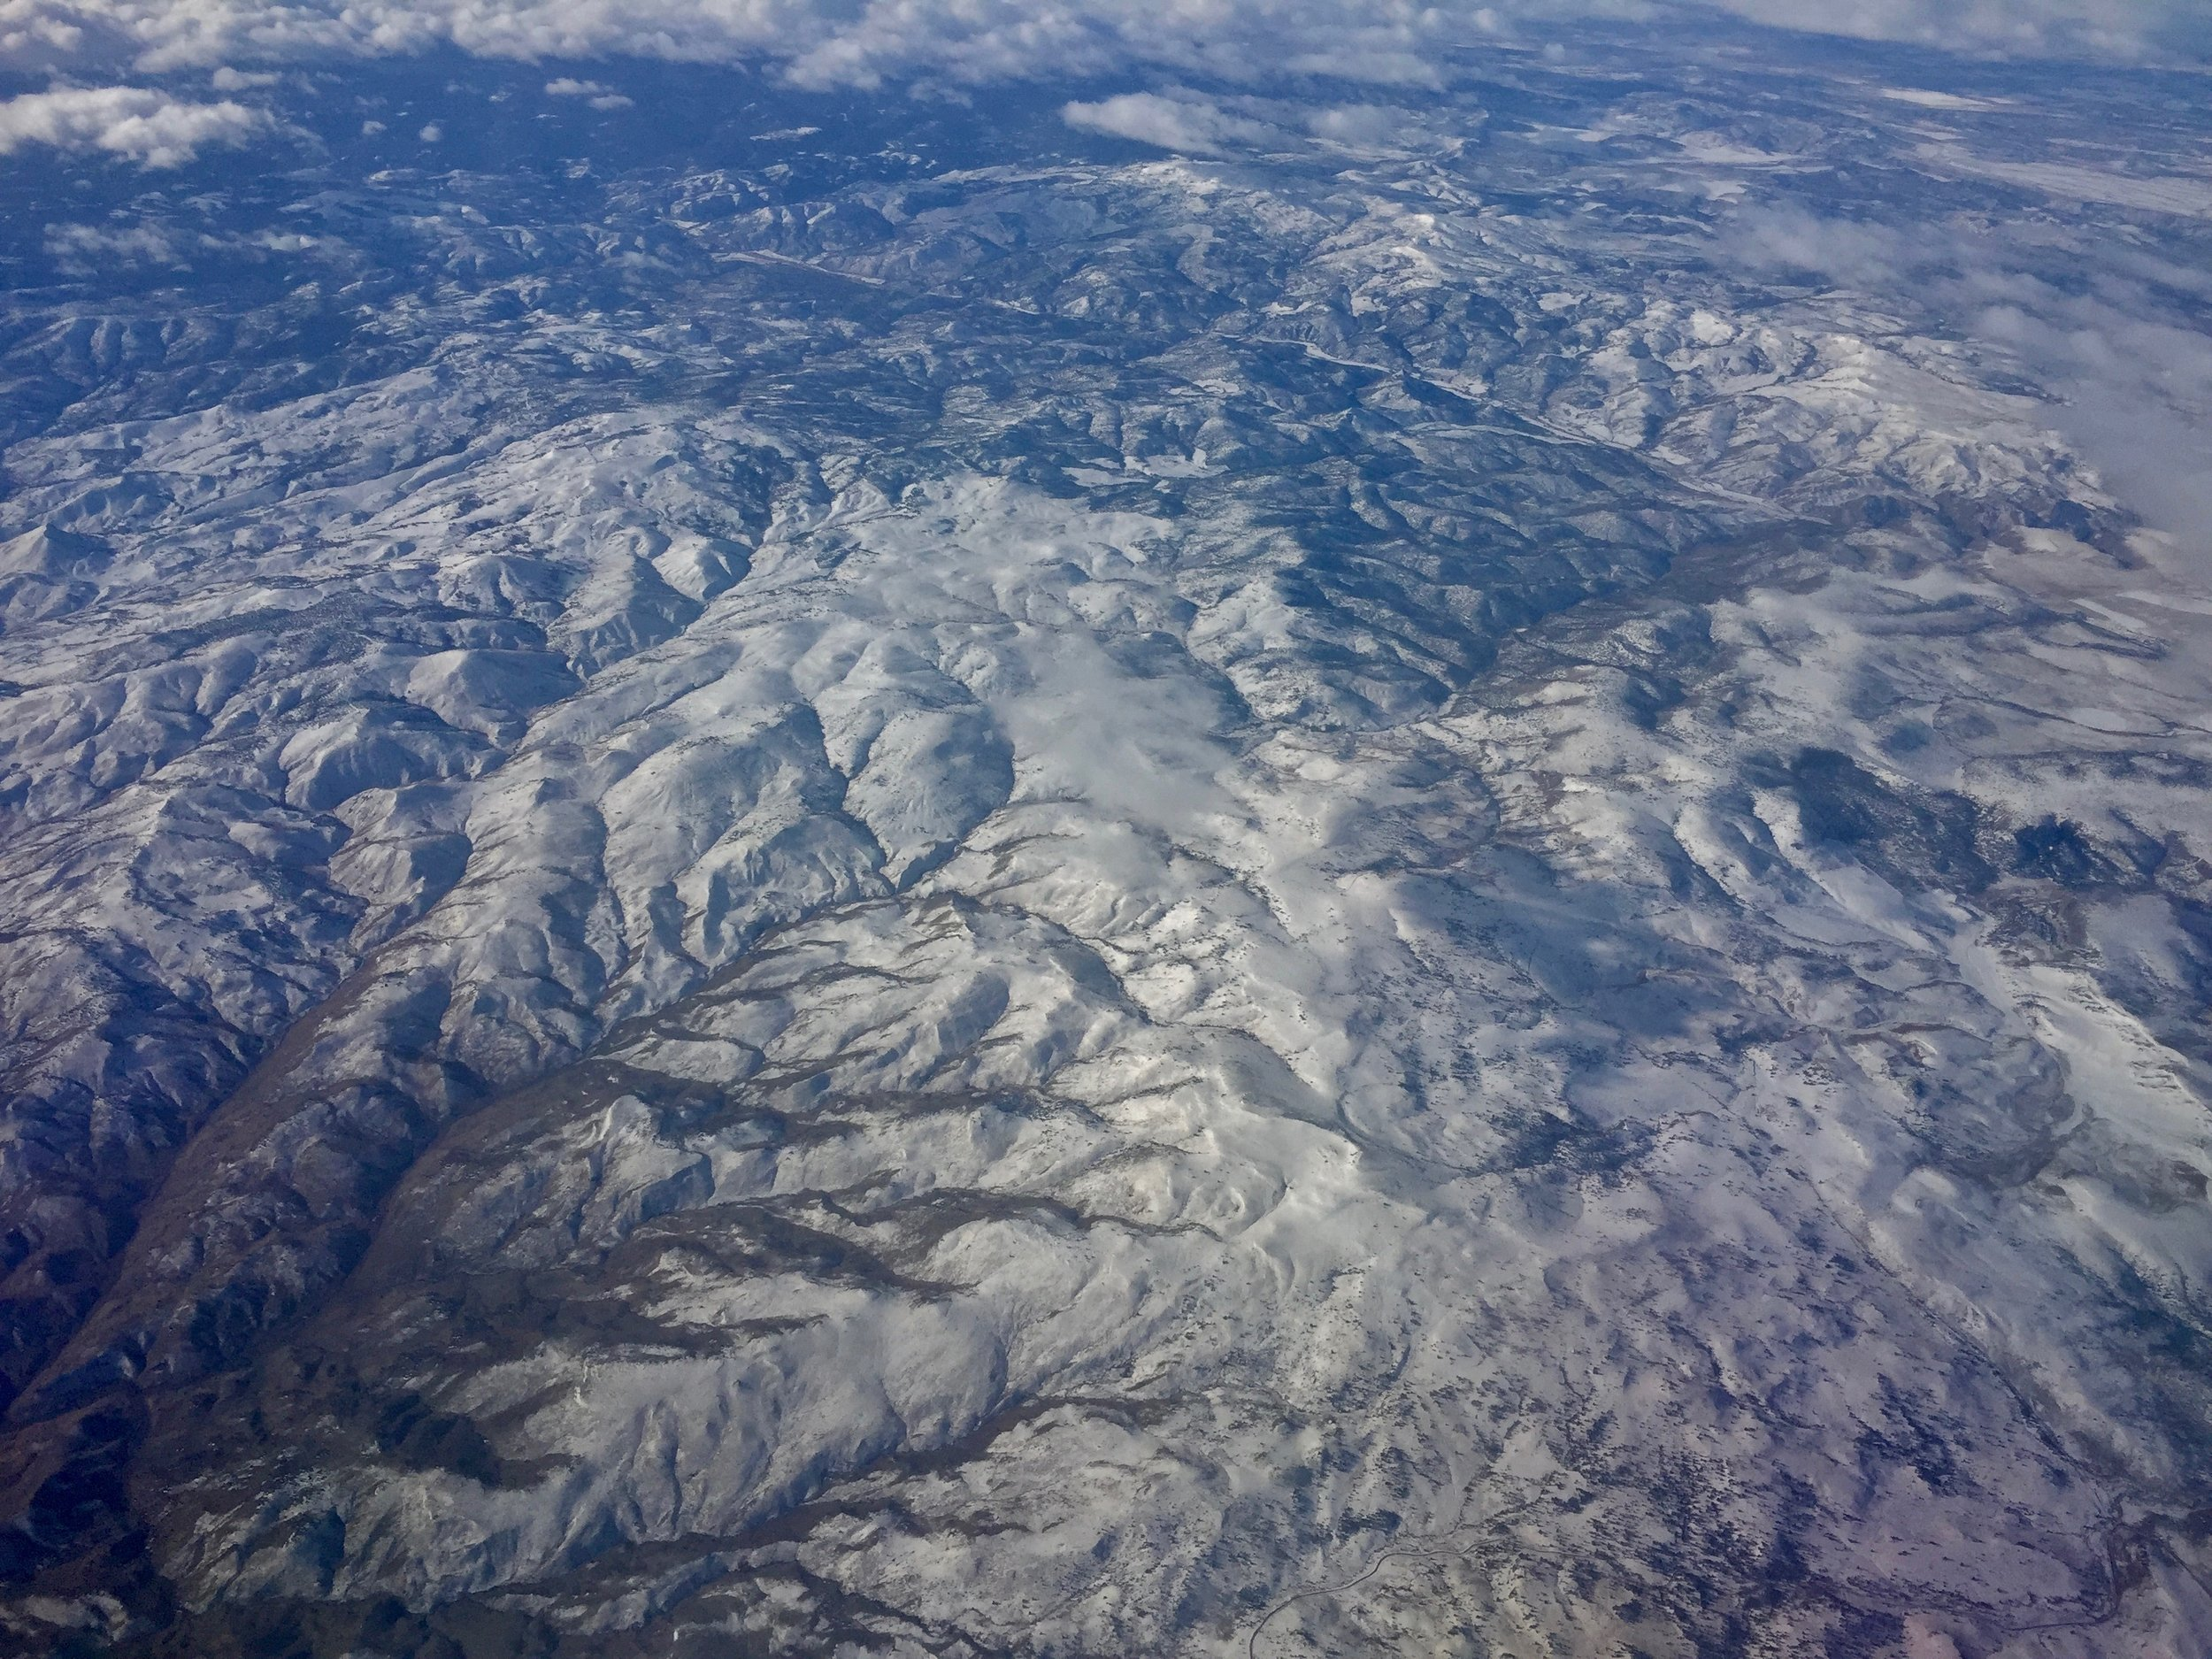 My airplane's-eye view enroute from Portland, Oregon to Boise, Idaho this week.